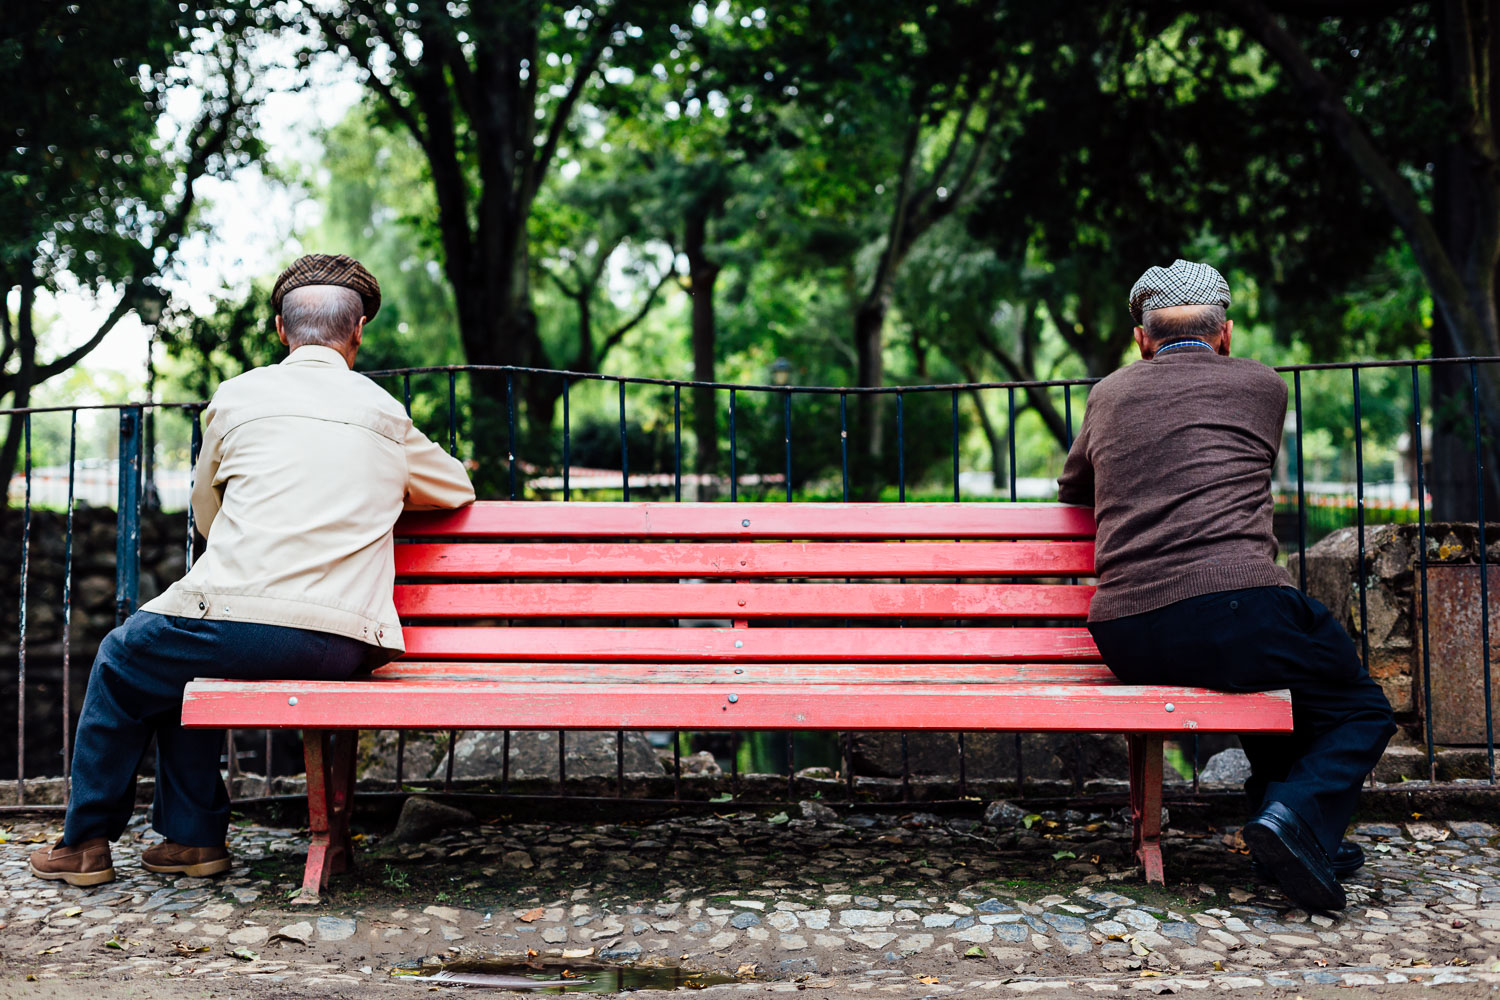 Park-Bench-Elderly-Red-Color-Friendship-Durazo-Photography